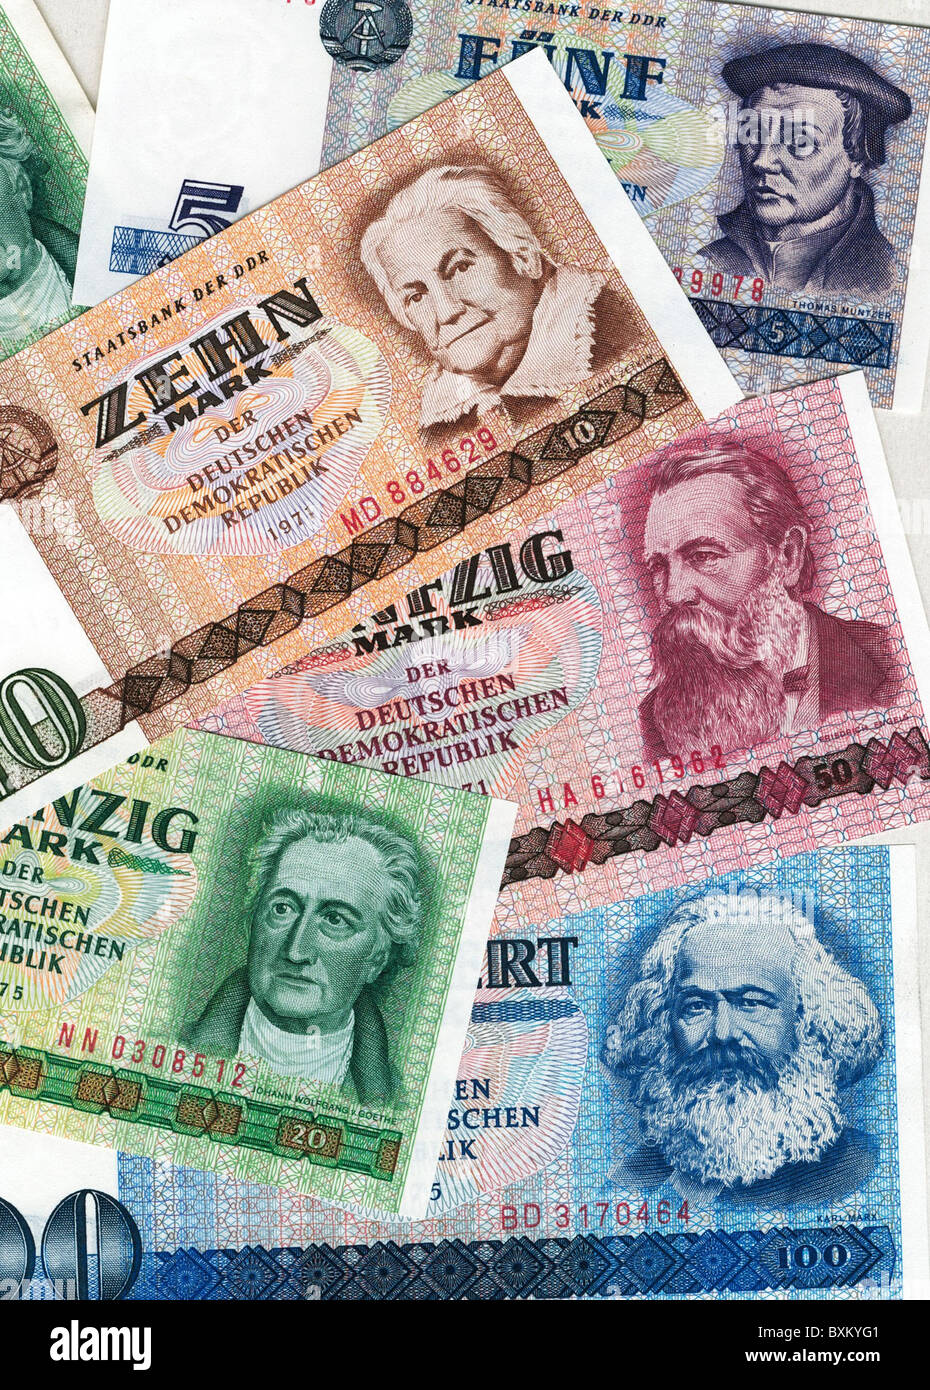 money / finance, bank notes, East Germany, different bank notes, 1971 / 1975, Additional-Rights-Clearences-NA - Stock Image